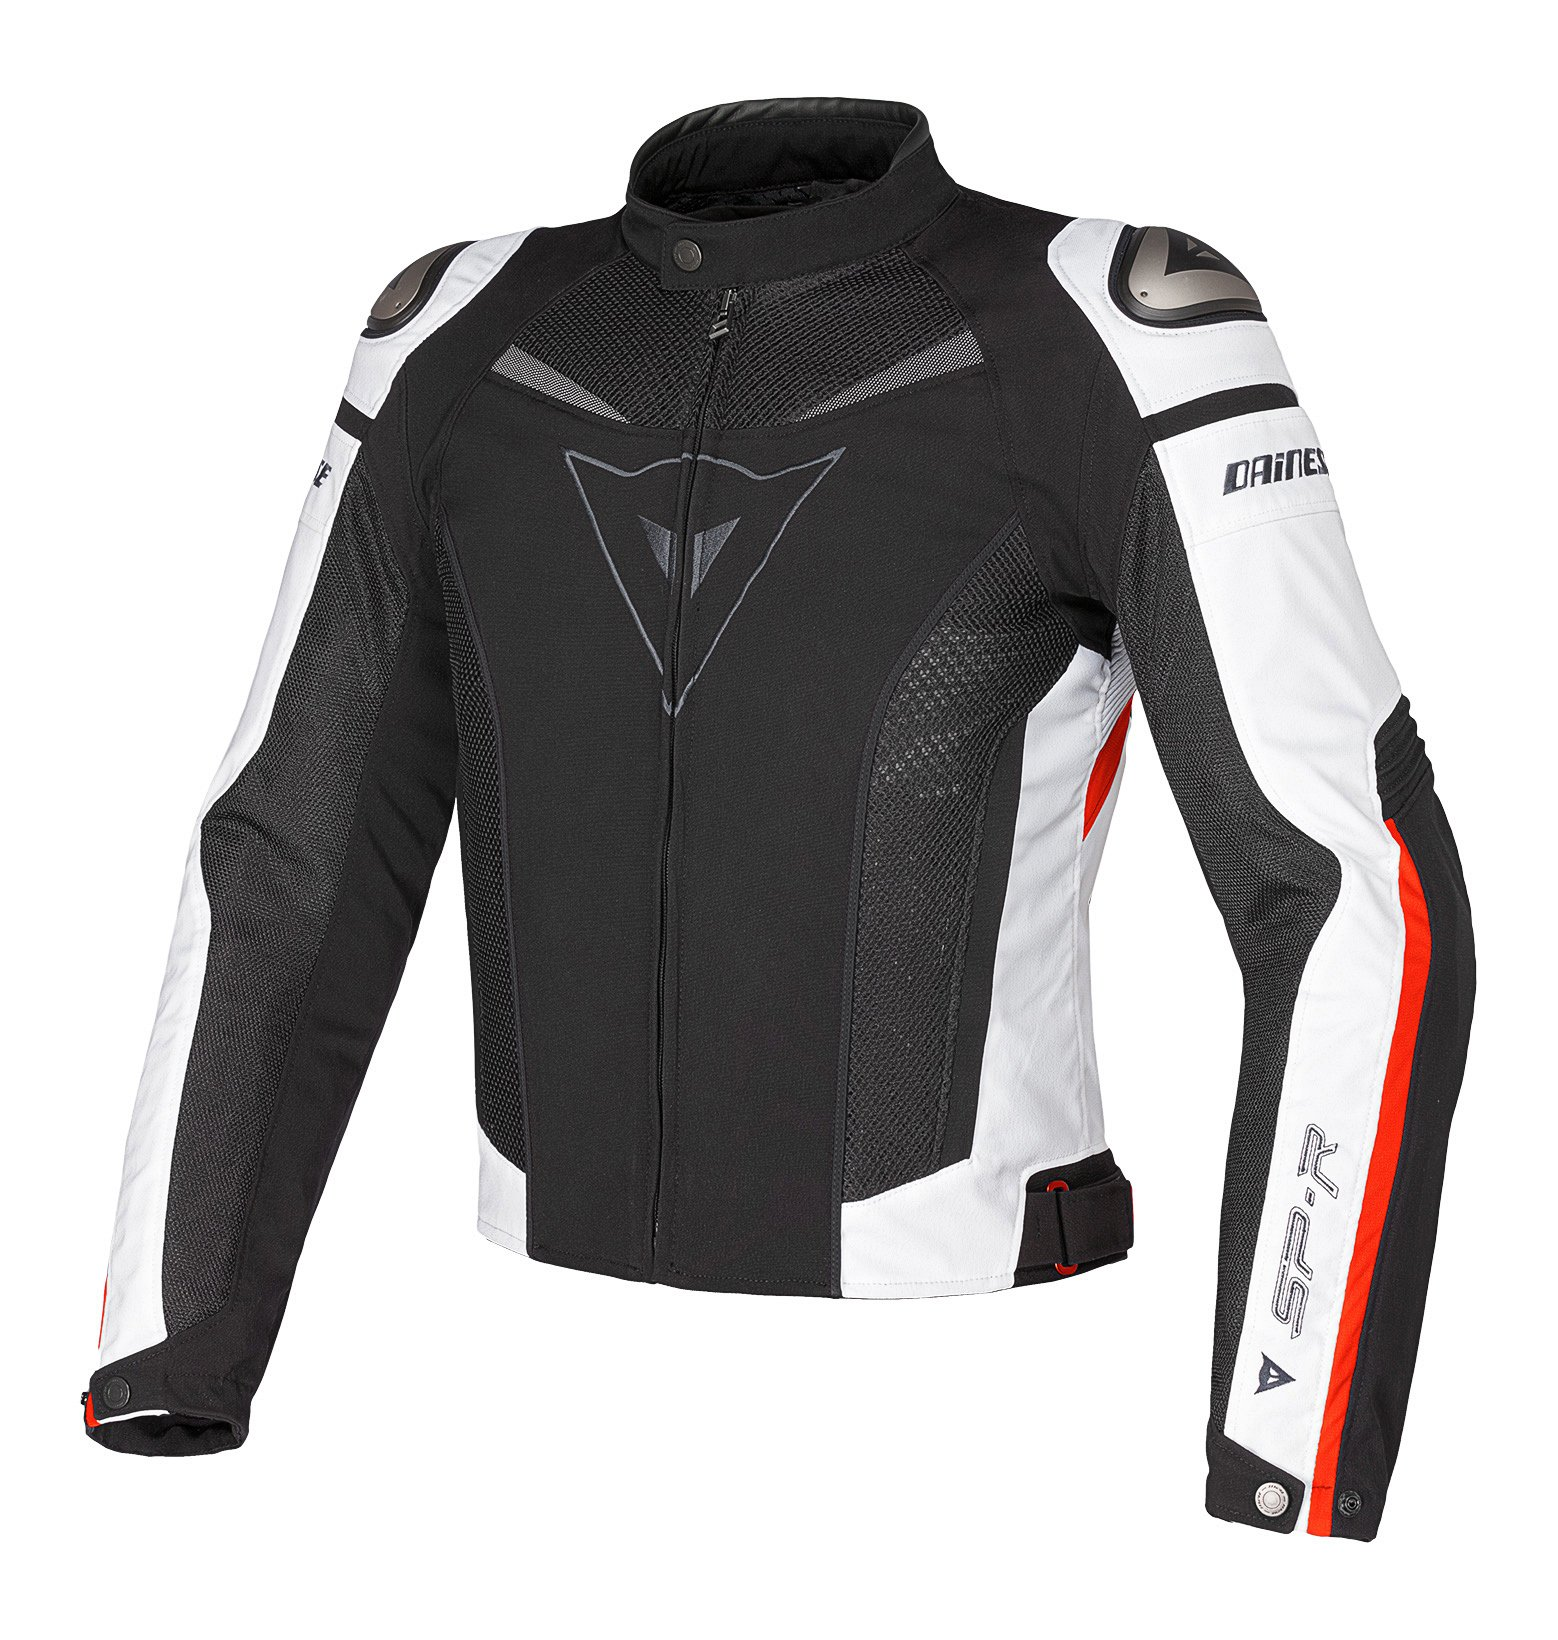 Dainese Super Speed Tex Textile Jacket (Euro 56/US 46, Black/White/Red) by Dainese